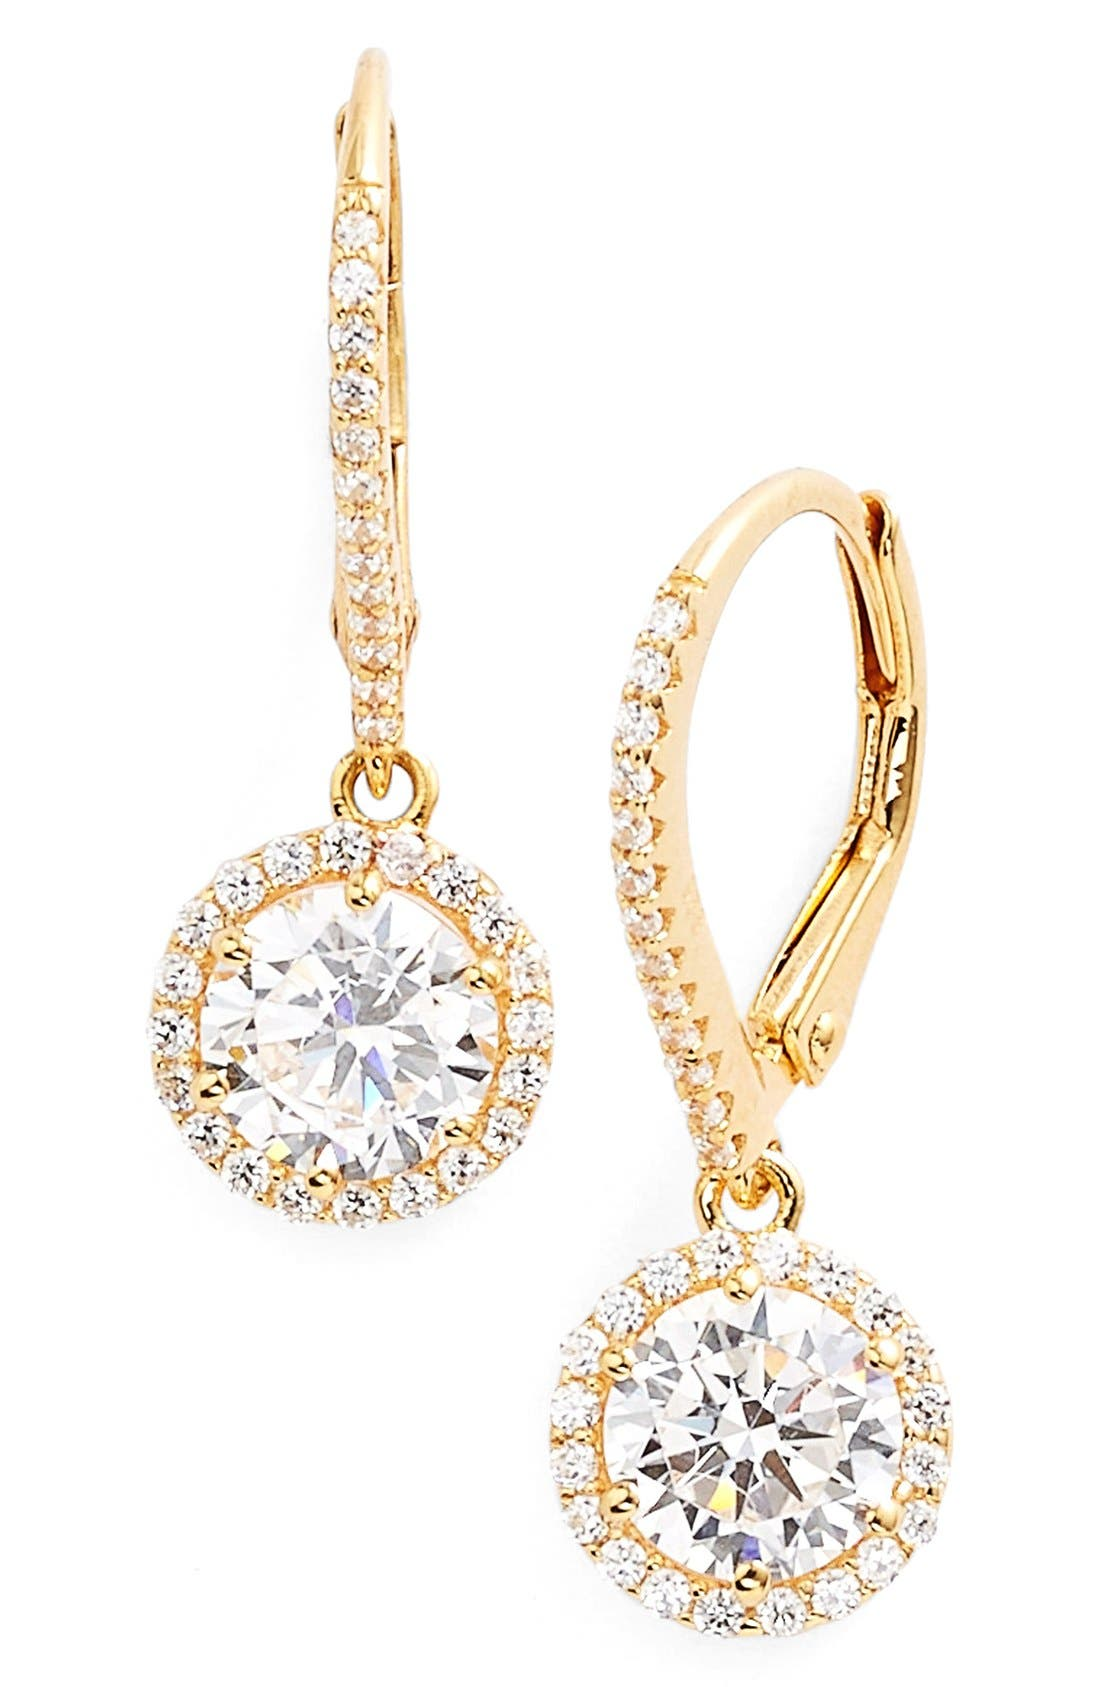 The timeless elegance of lever-back drop earrings get a radiant boost from 68 sparkling simulated diamonds that glint and glitter in the light. Style Name: Lafonn \\\'Lassaire\\\' Drop Earrings. Style Number: 5025276. Available in stores.